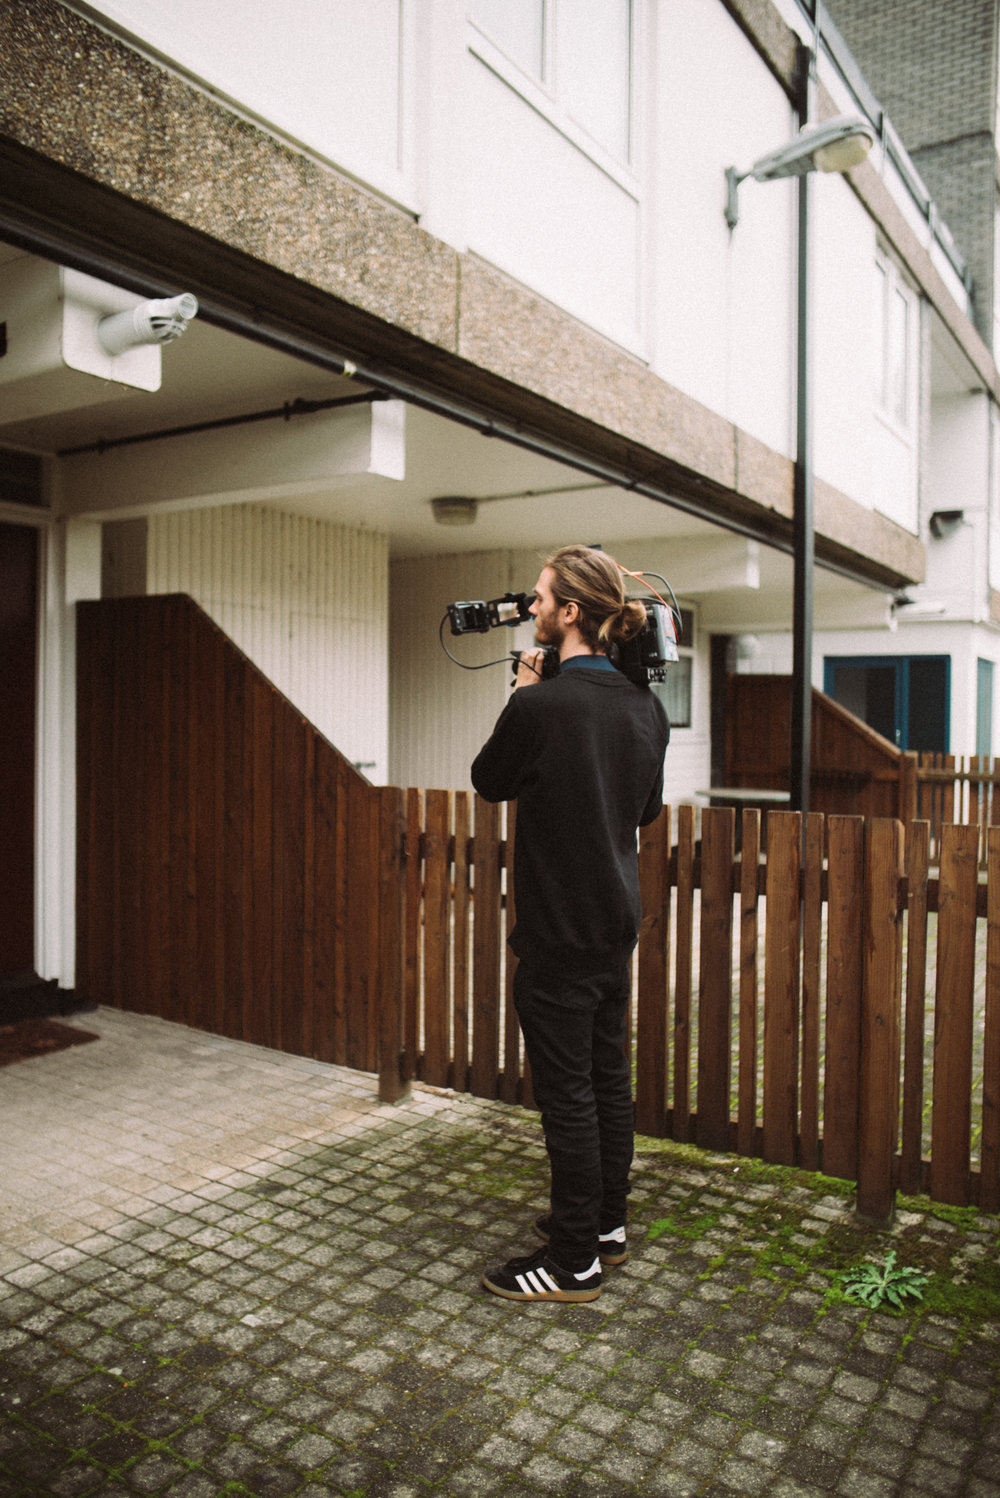 Max Anstruther - %22Come%22 - Music Video BTS - 27.01.18 (26 of 63).jpg